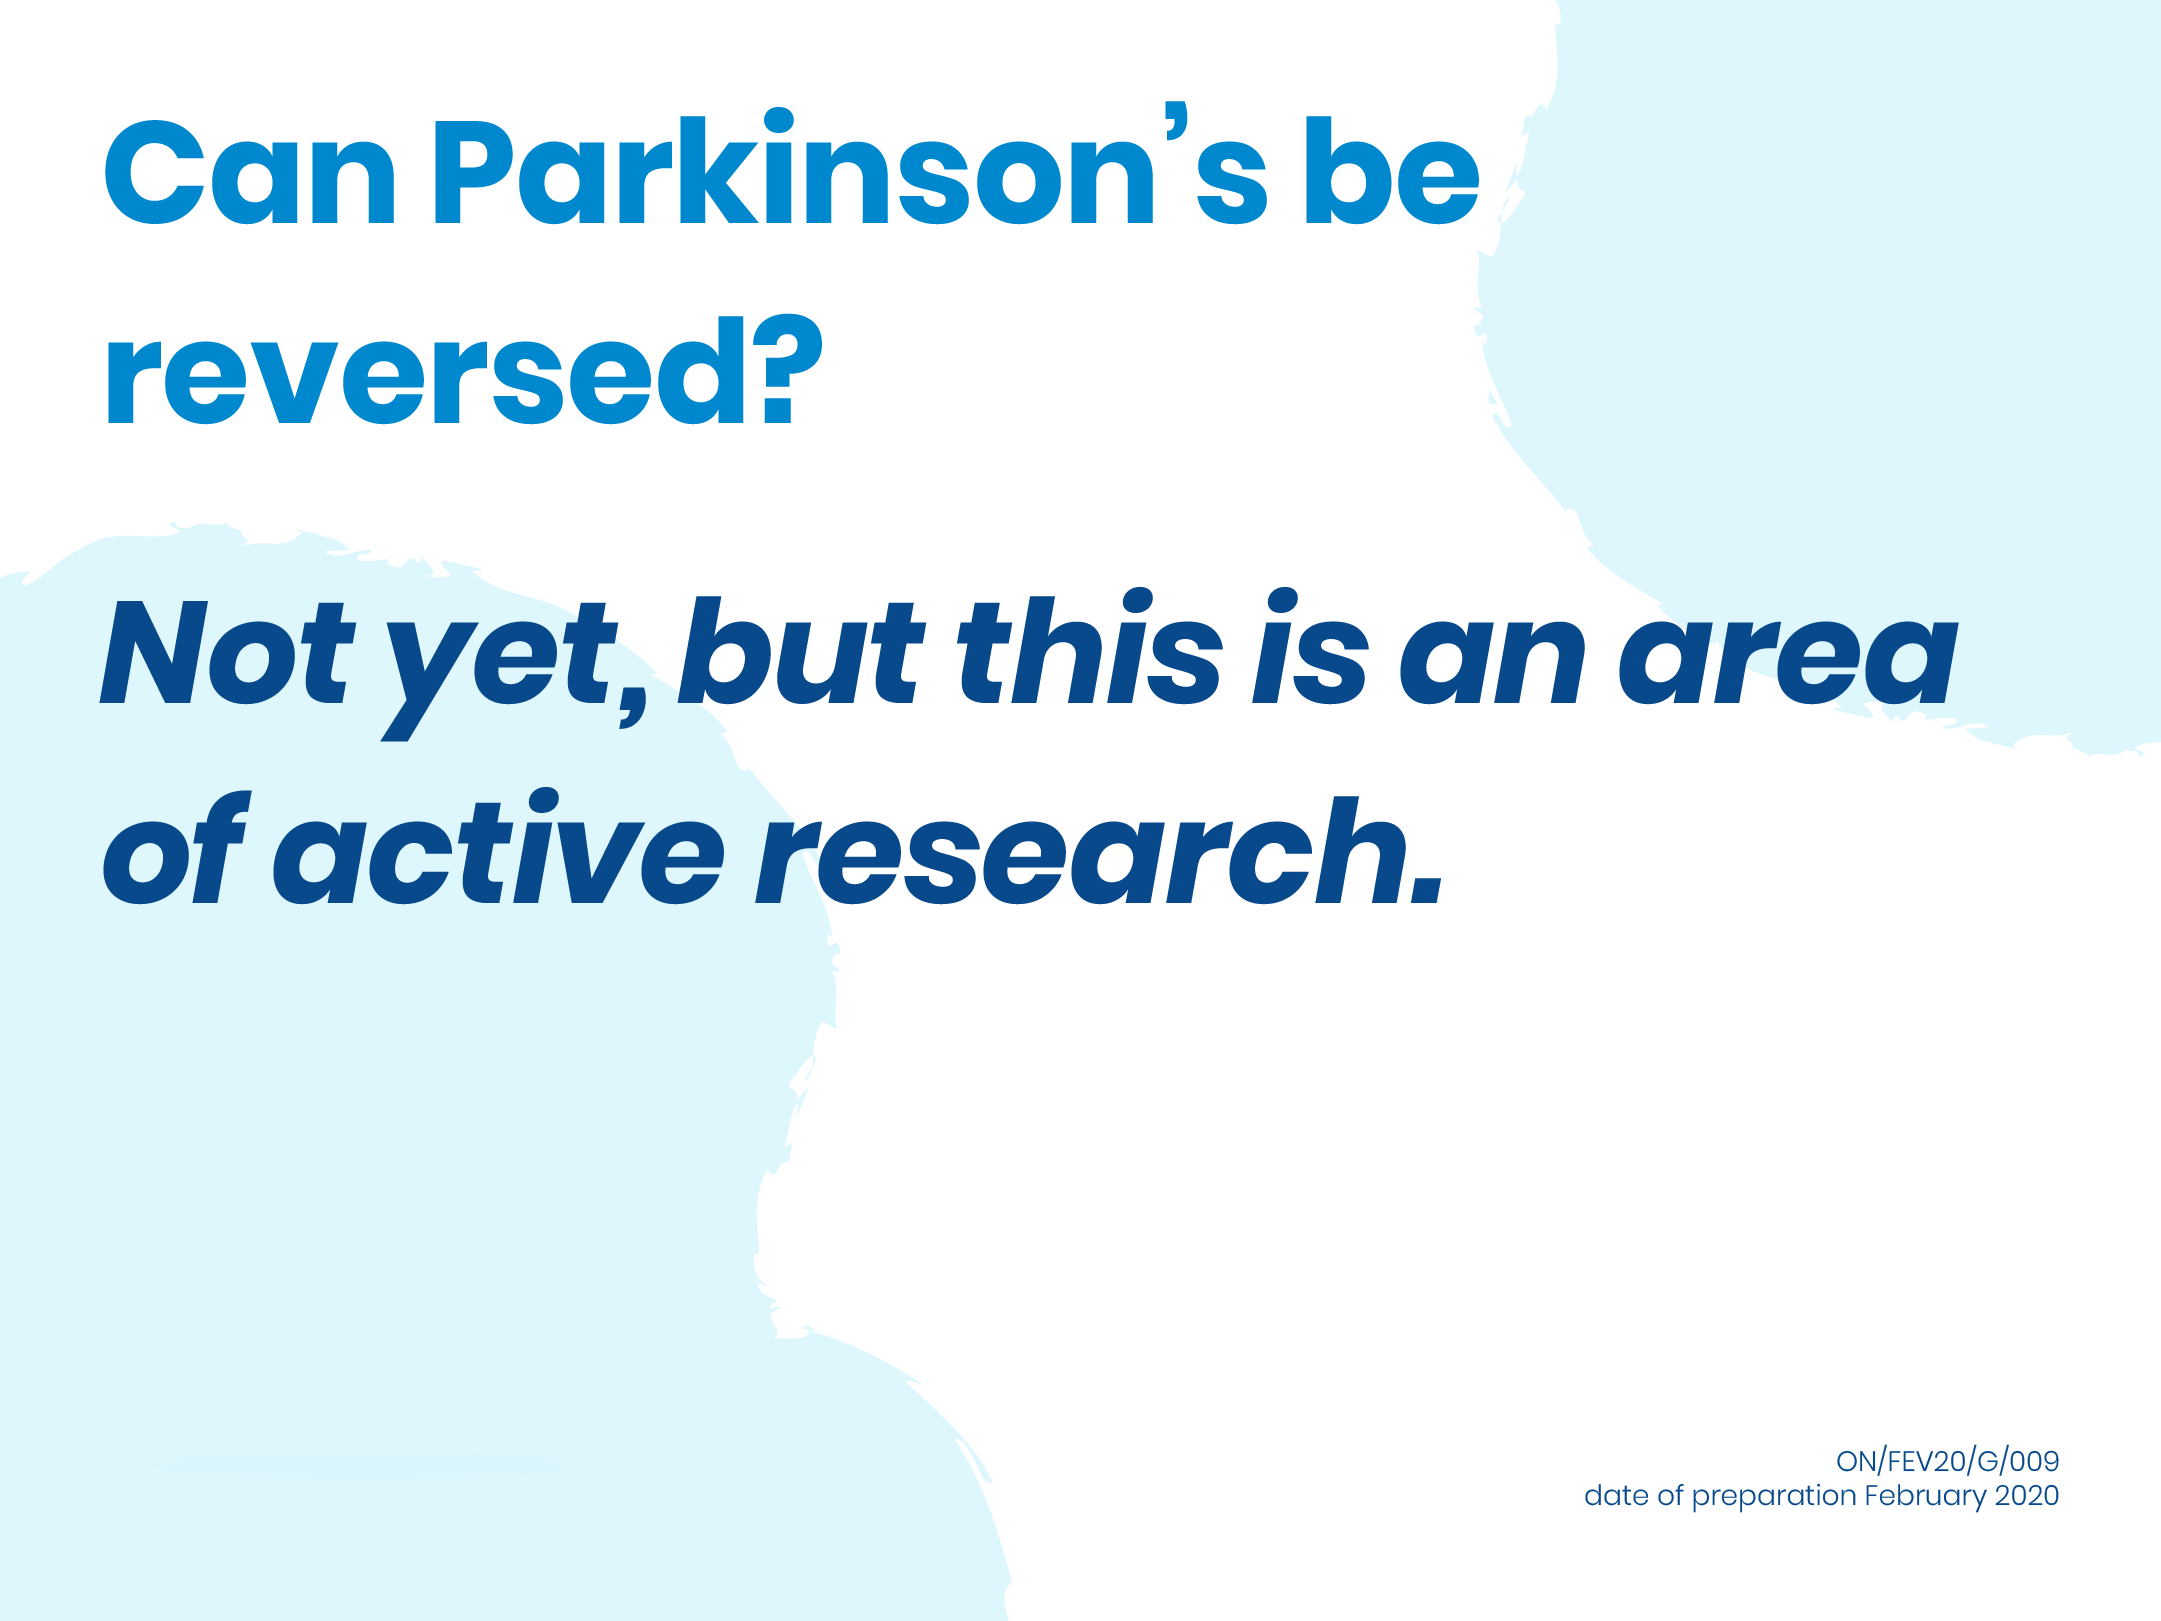 Can Parkinson's be reversed?